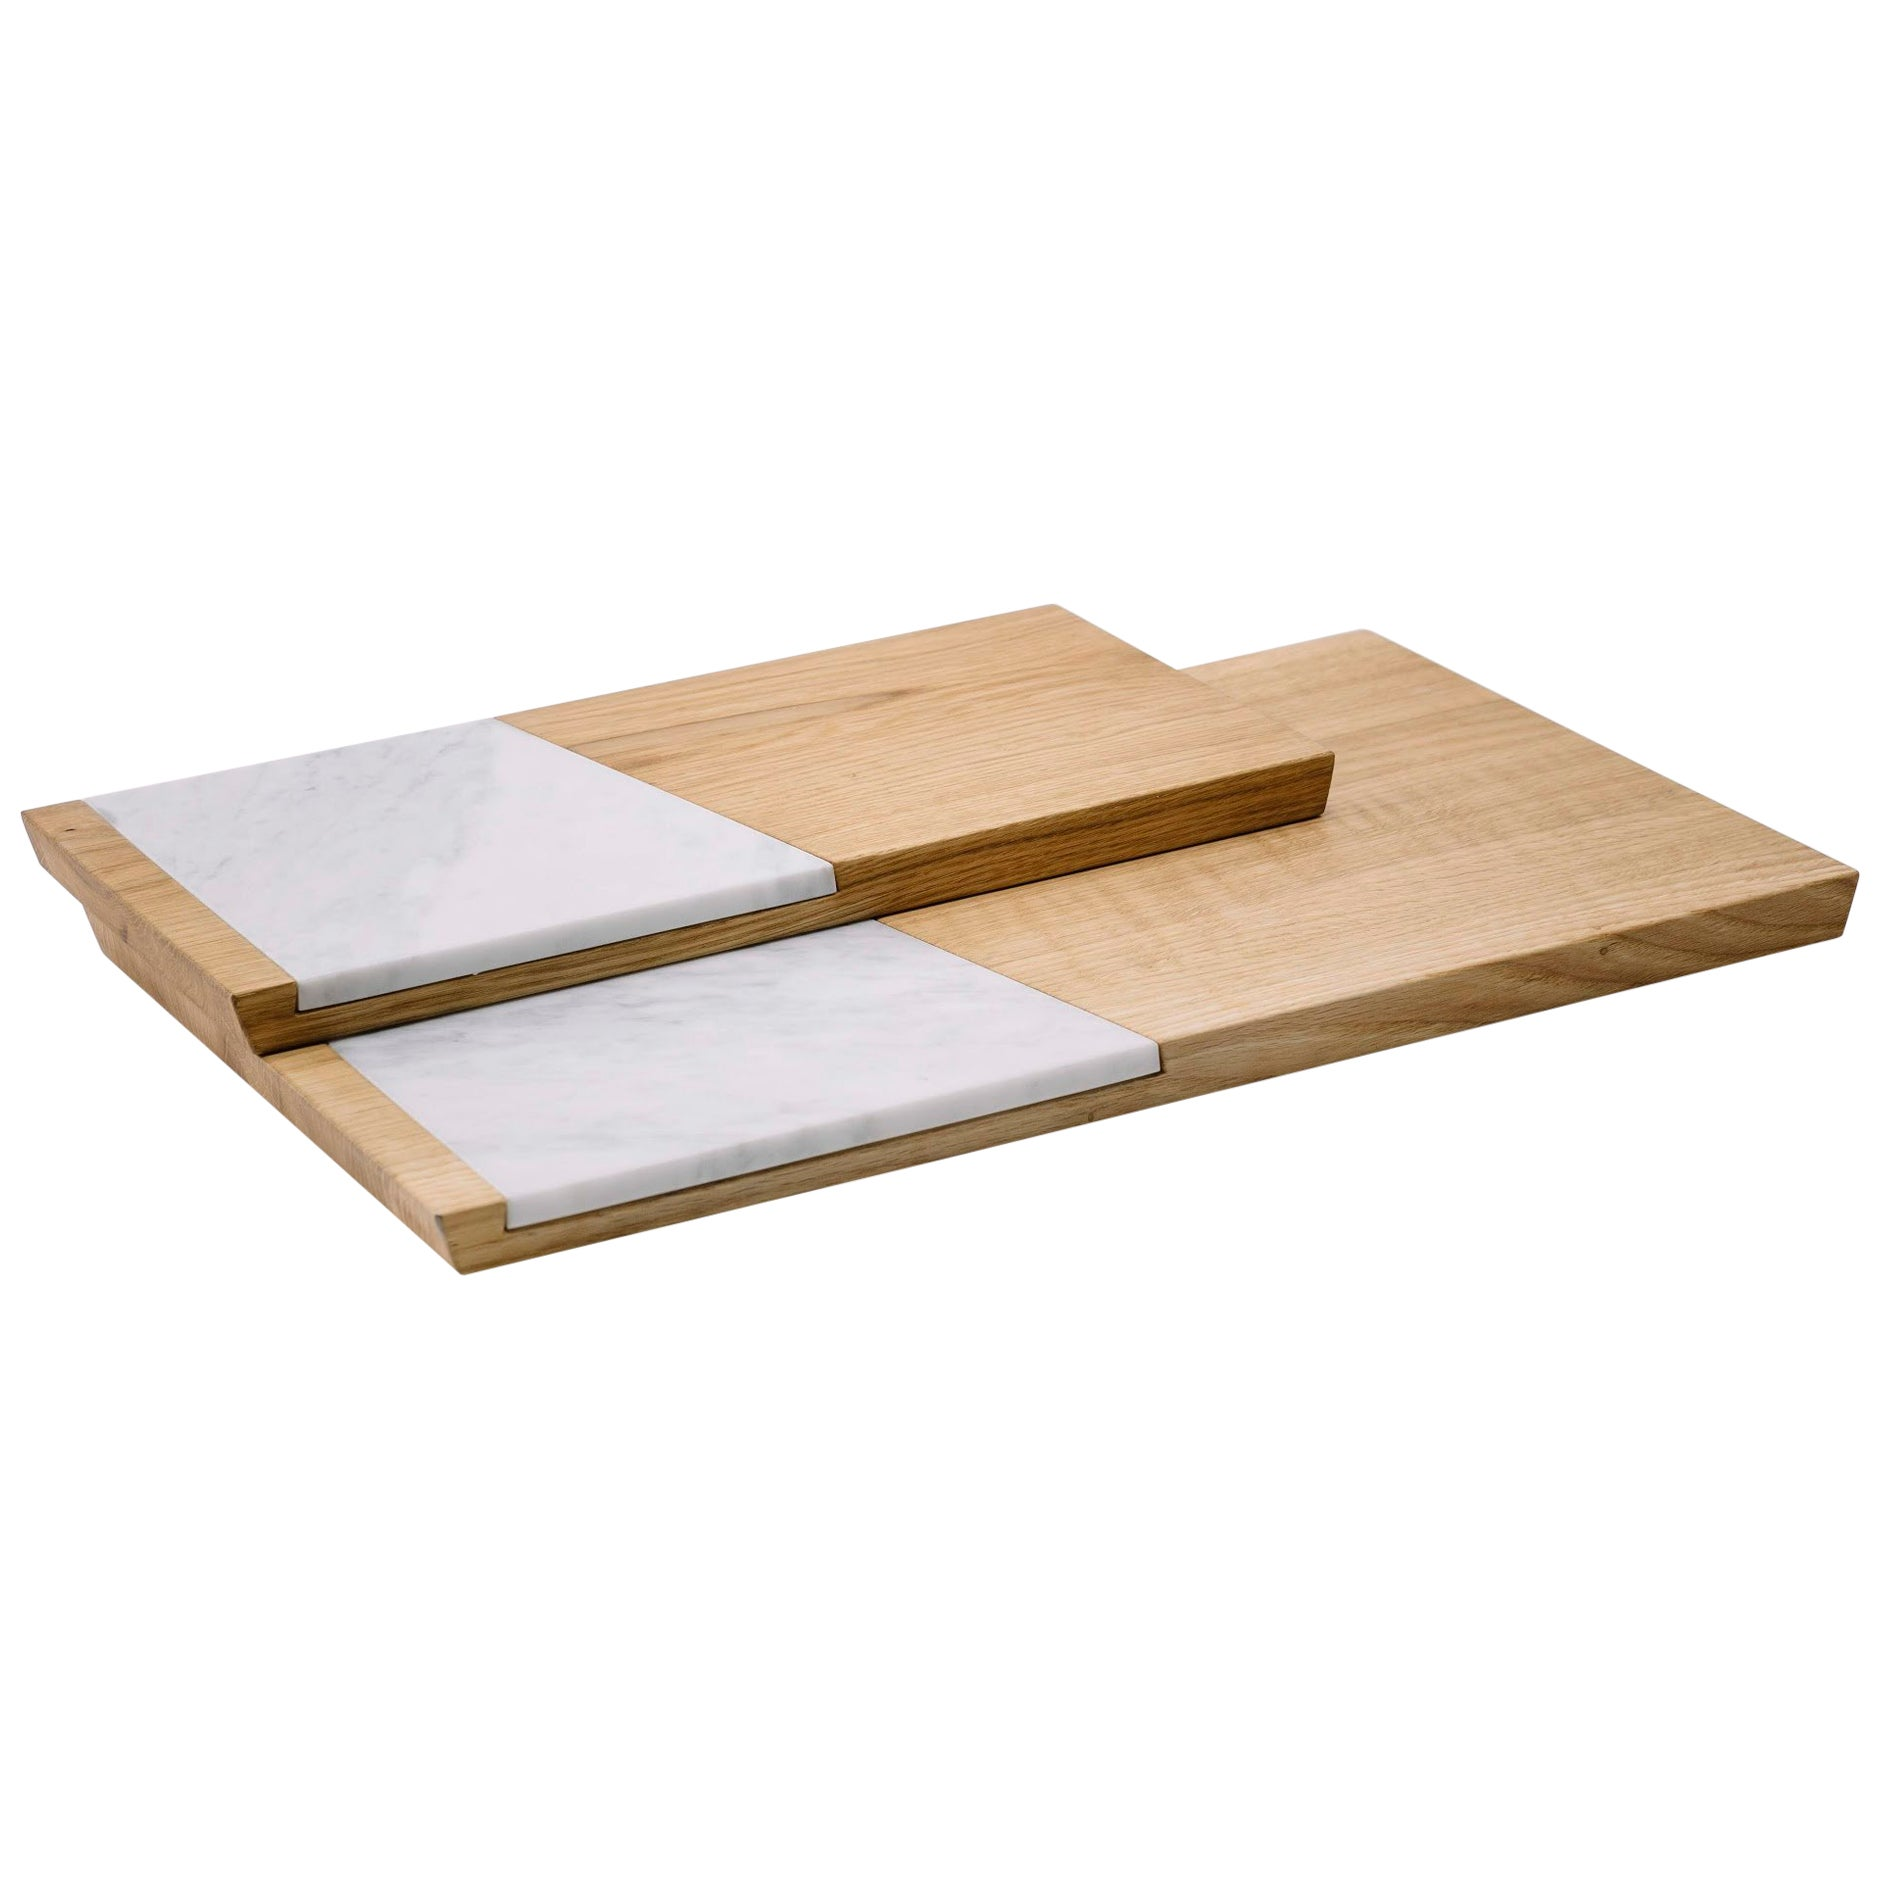 Small Marble Cutting Board Pietre Di Monitillo Rondine Small Marble And Oak Tray